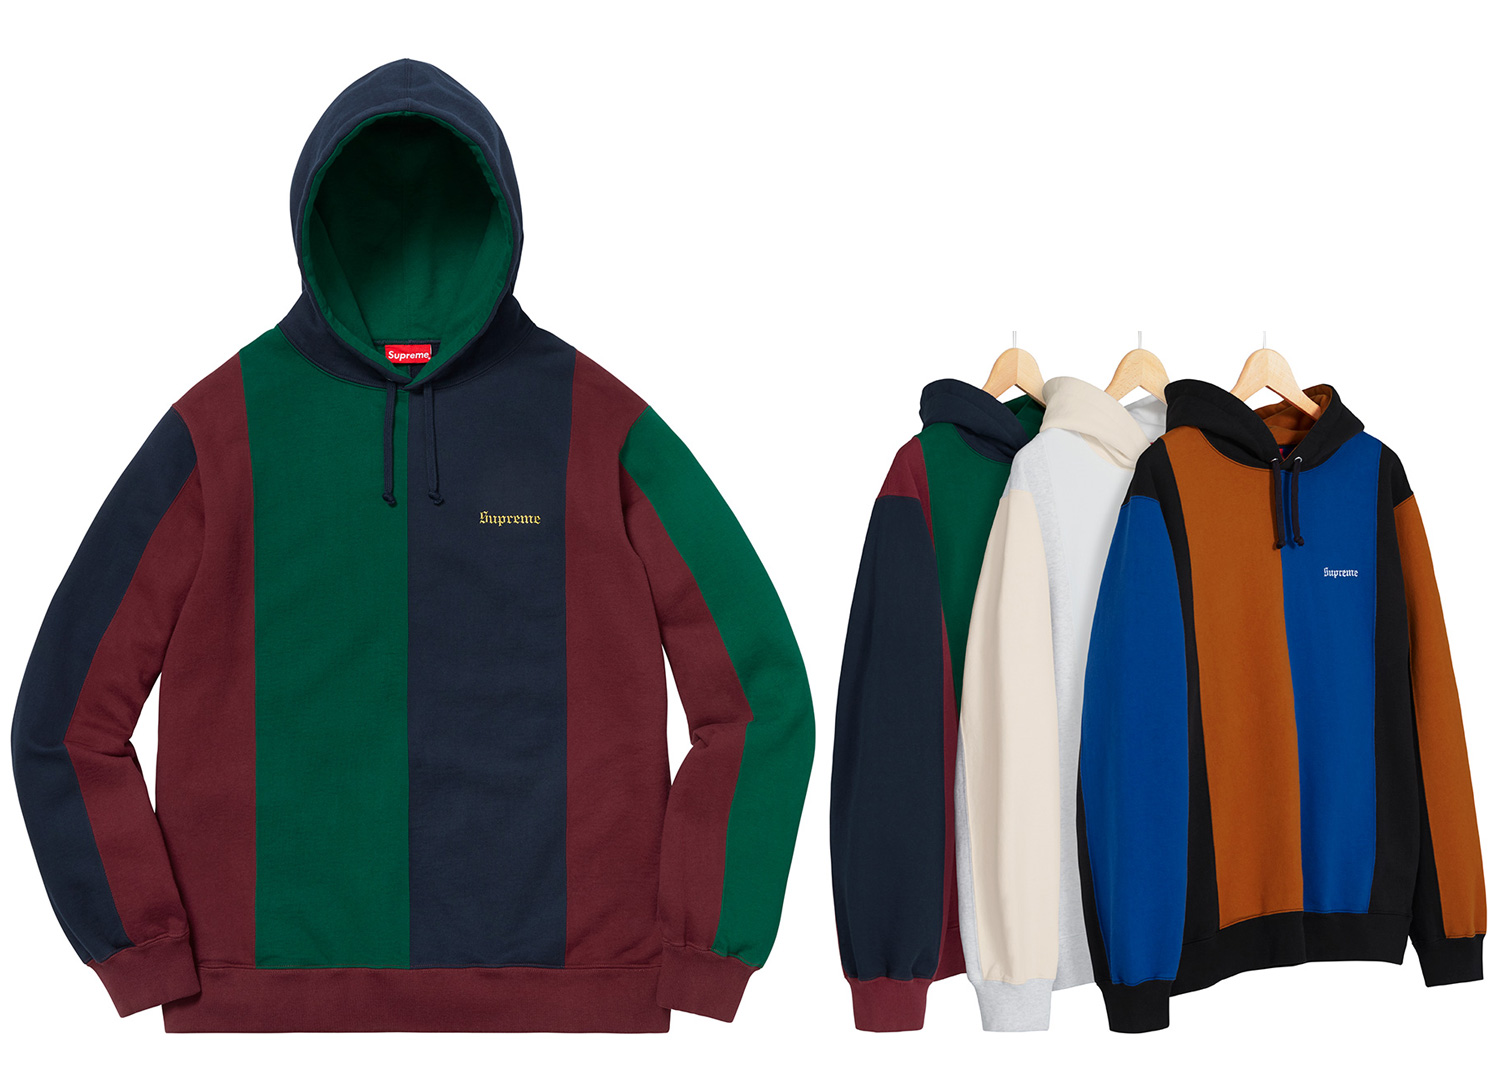 Tricolor Hooded Sweatshirt